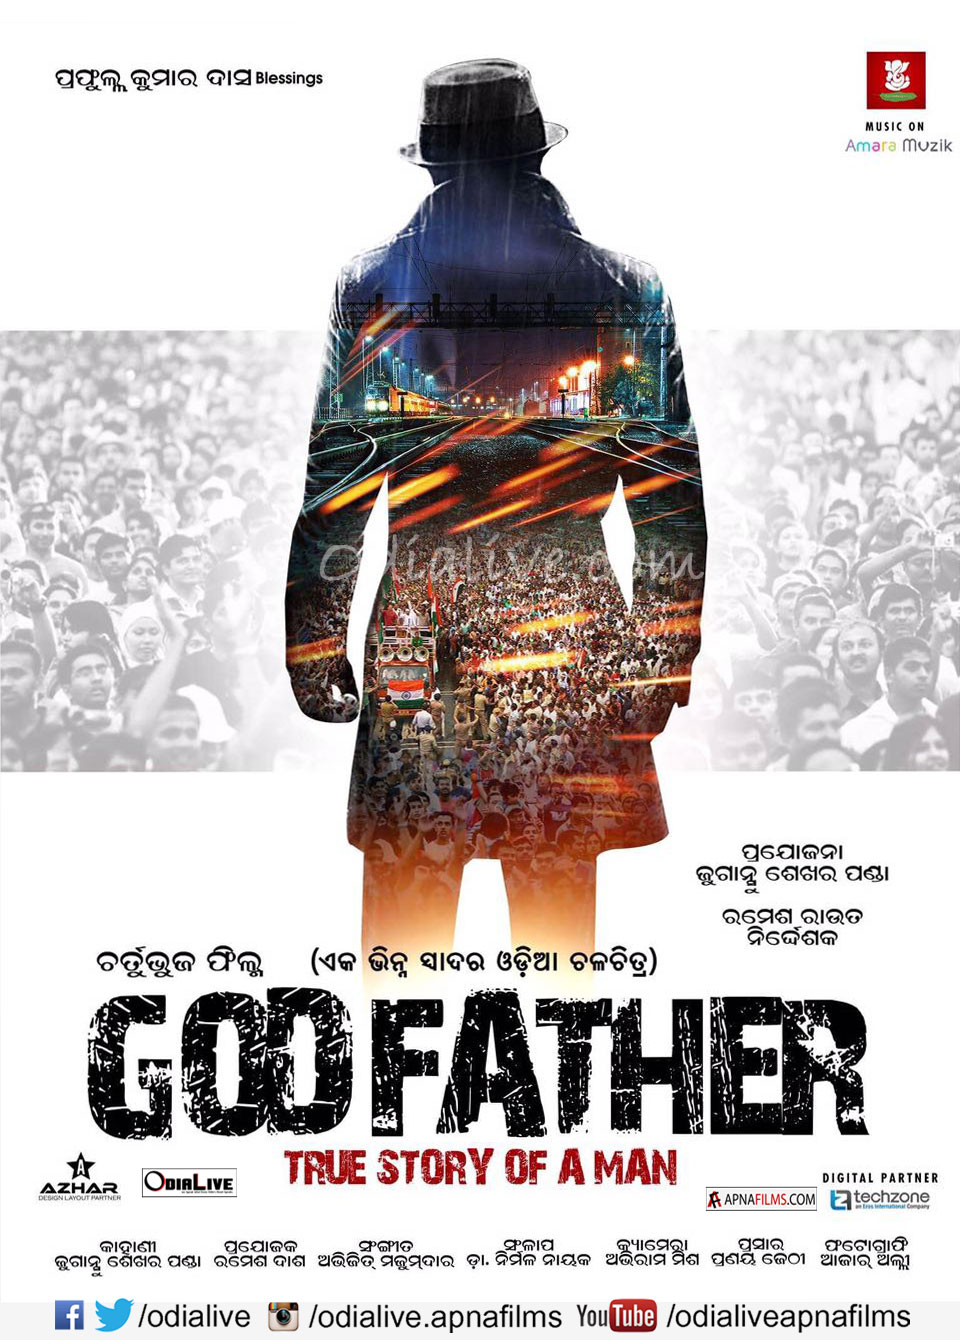 Watch God Father Odia Film trailer 4